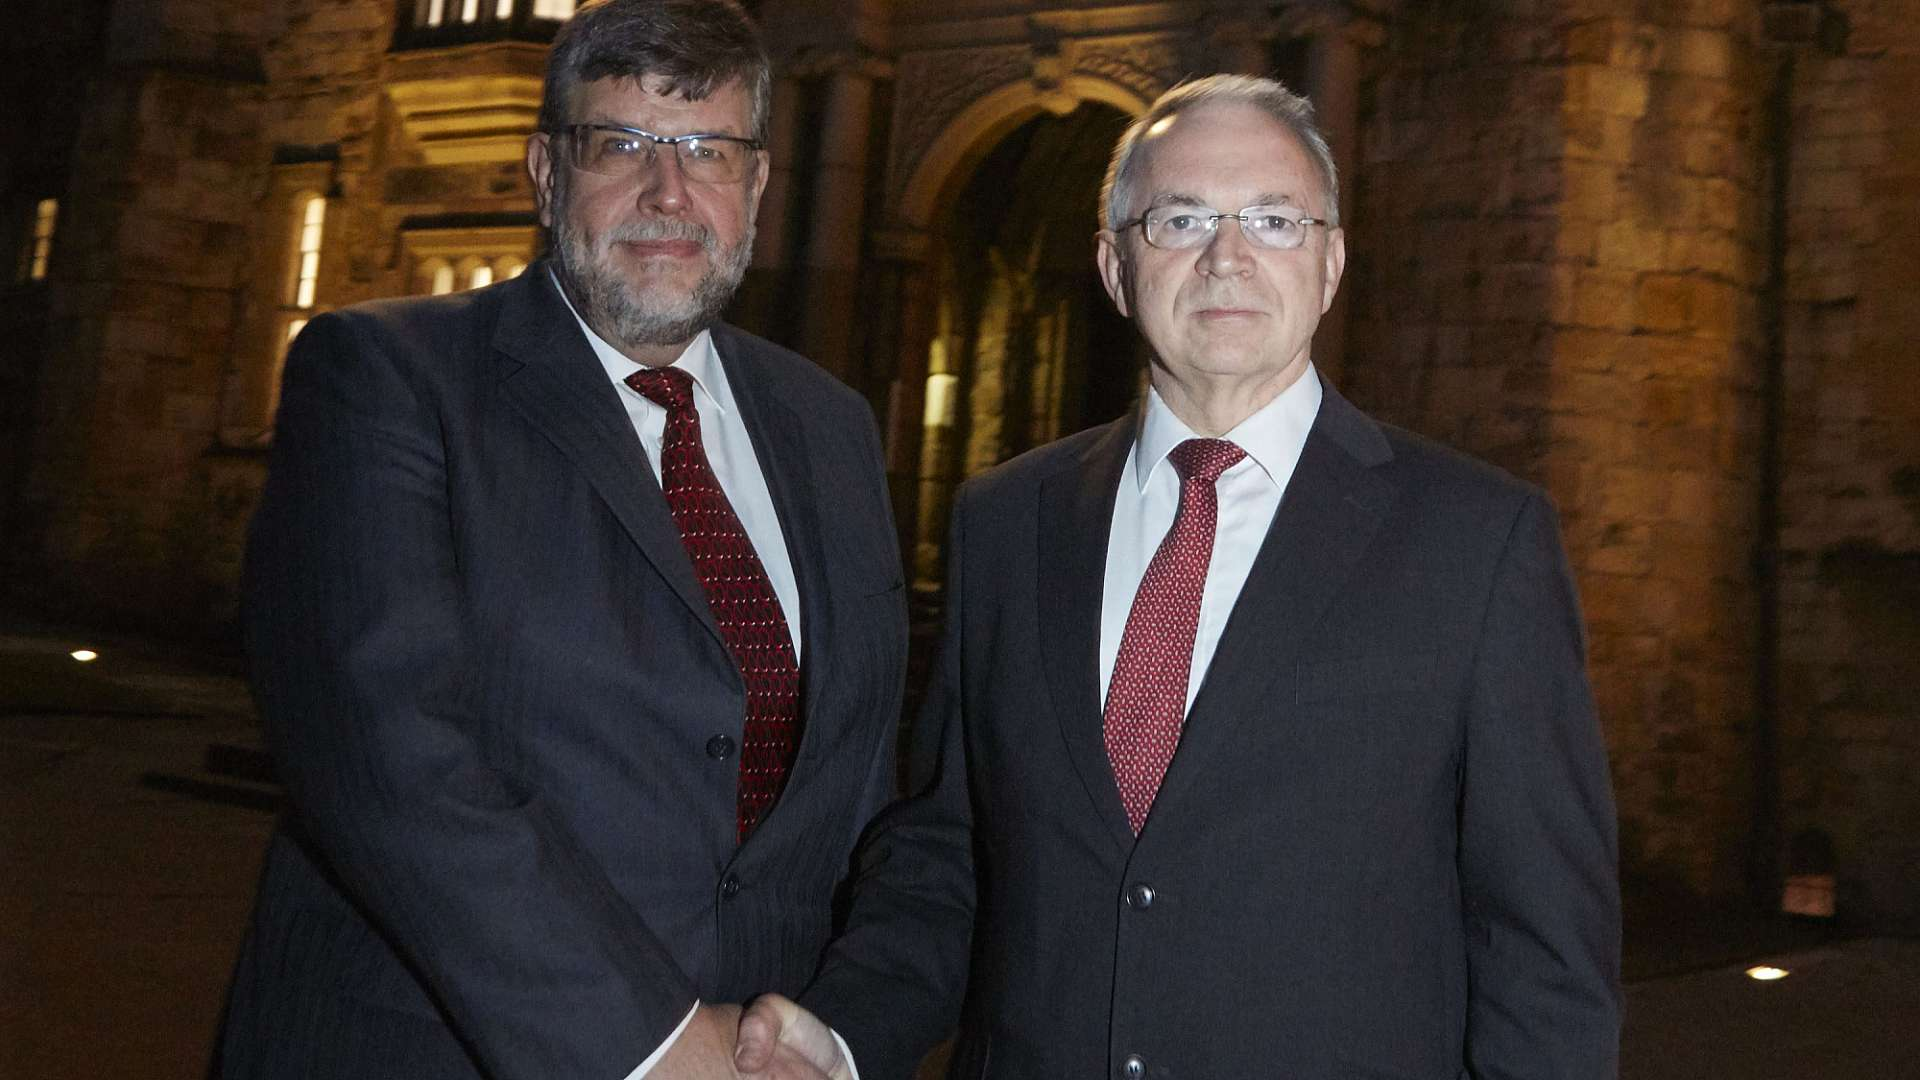 CPI and Durham University will seek out strategic opportunities for collaboration with significant impact